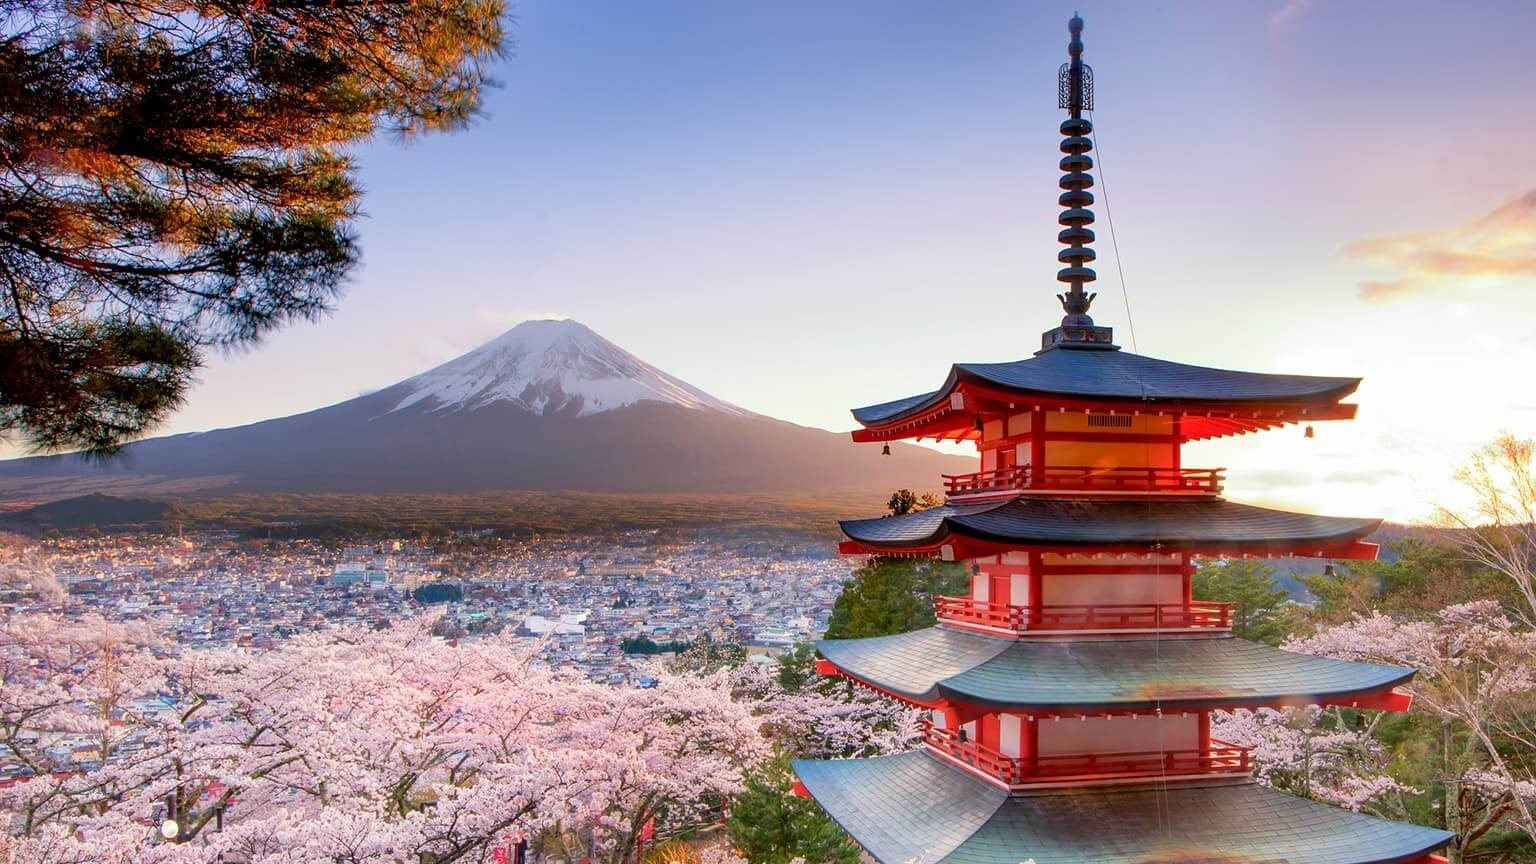 View of a red Chureito Pagoda and sakura trees with Fuji Mountain background in Japan